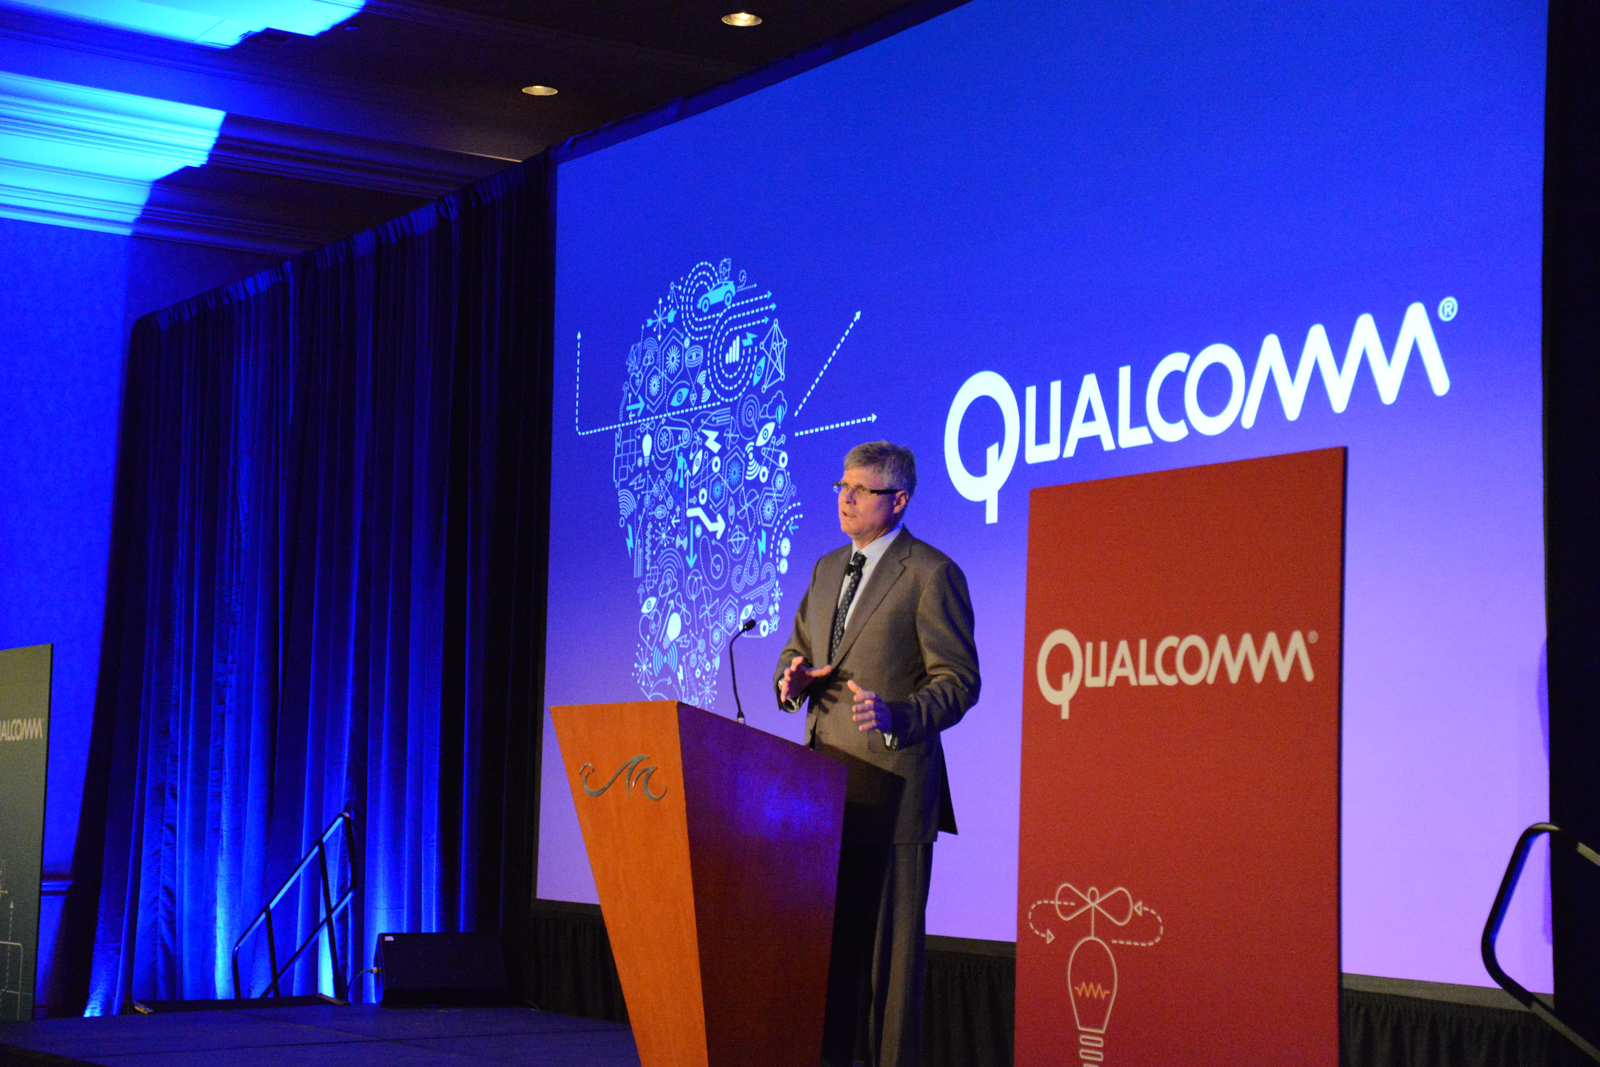 Qualcomm CEO Steve Mollenkopf explains it all.